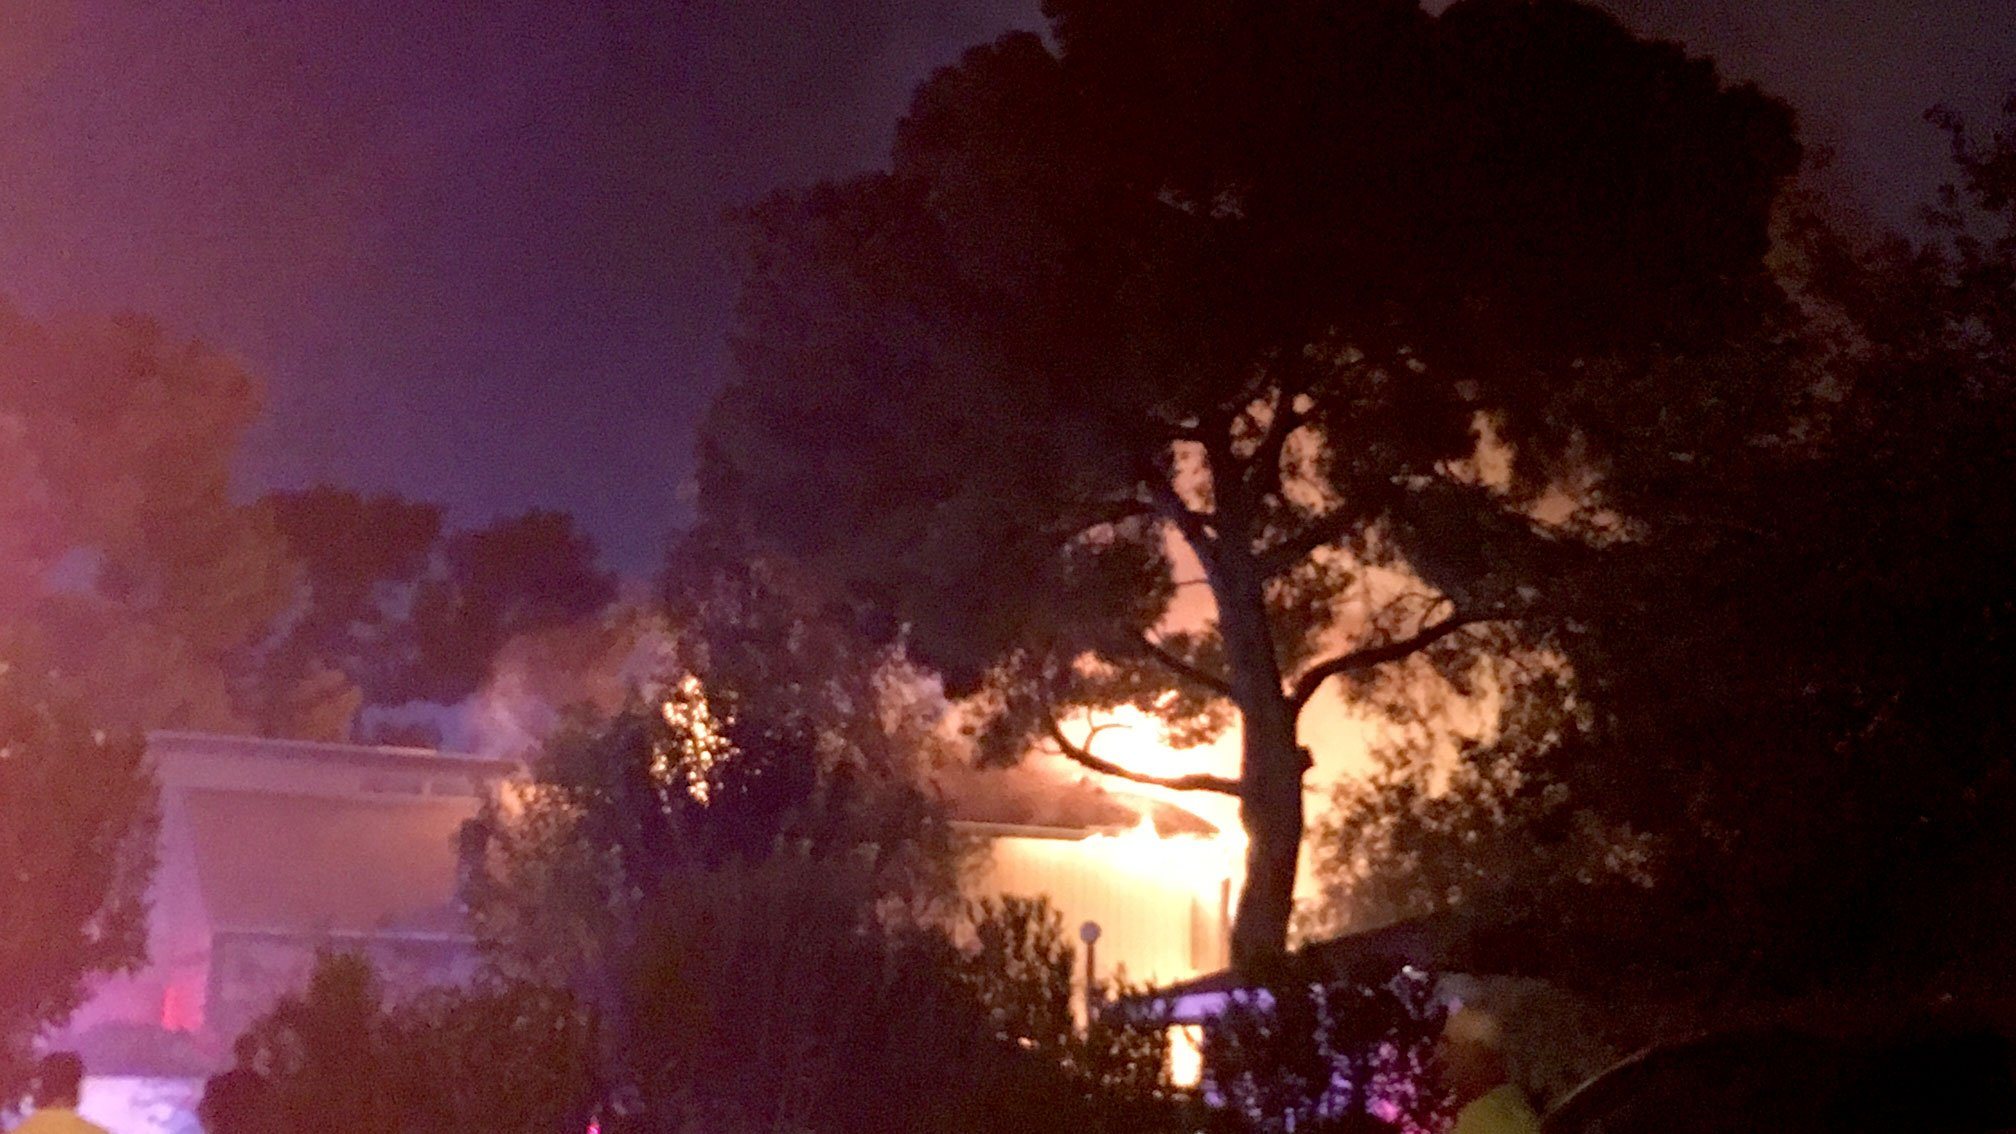 Crews are battling a fire at a townhome near Flamingo Road and the 515 on Oct. 6, 2017. (Sam Argier/FOX5)